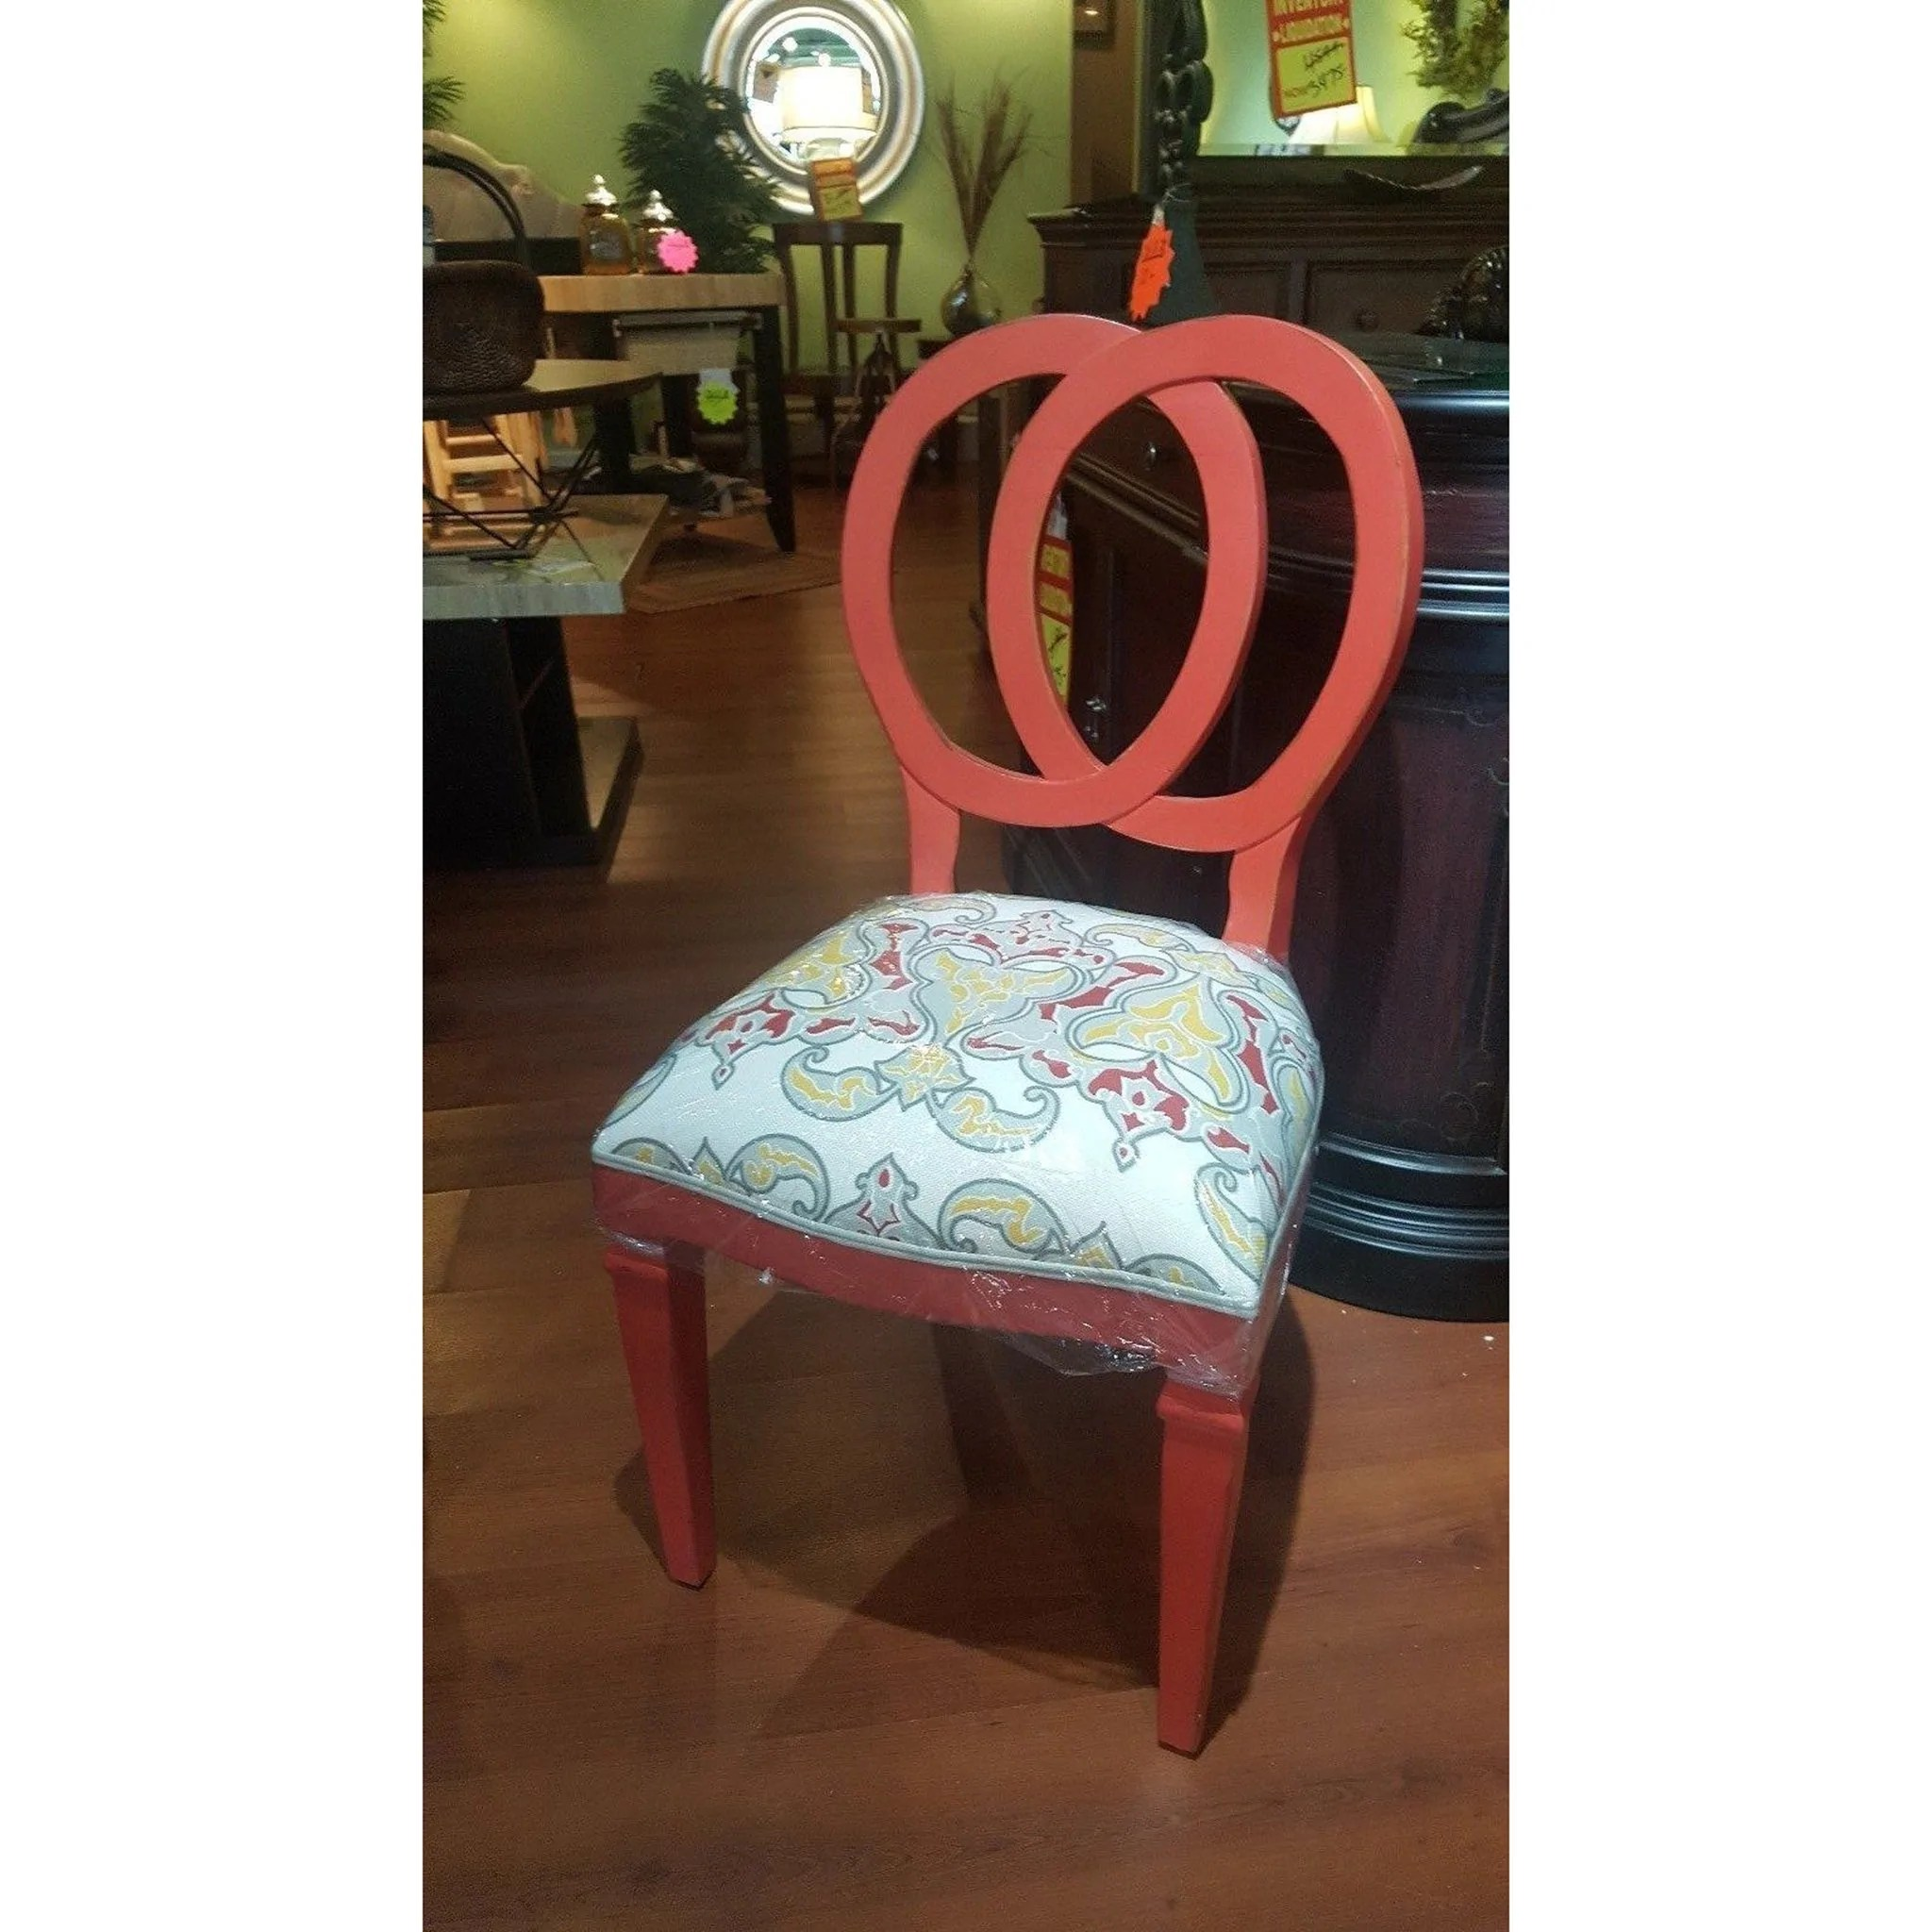 Dining Chair Set Of 6 Steven Shell Oso Dining Chairs Set Of 6 Cherry Red Distressed Finish